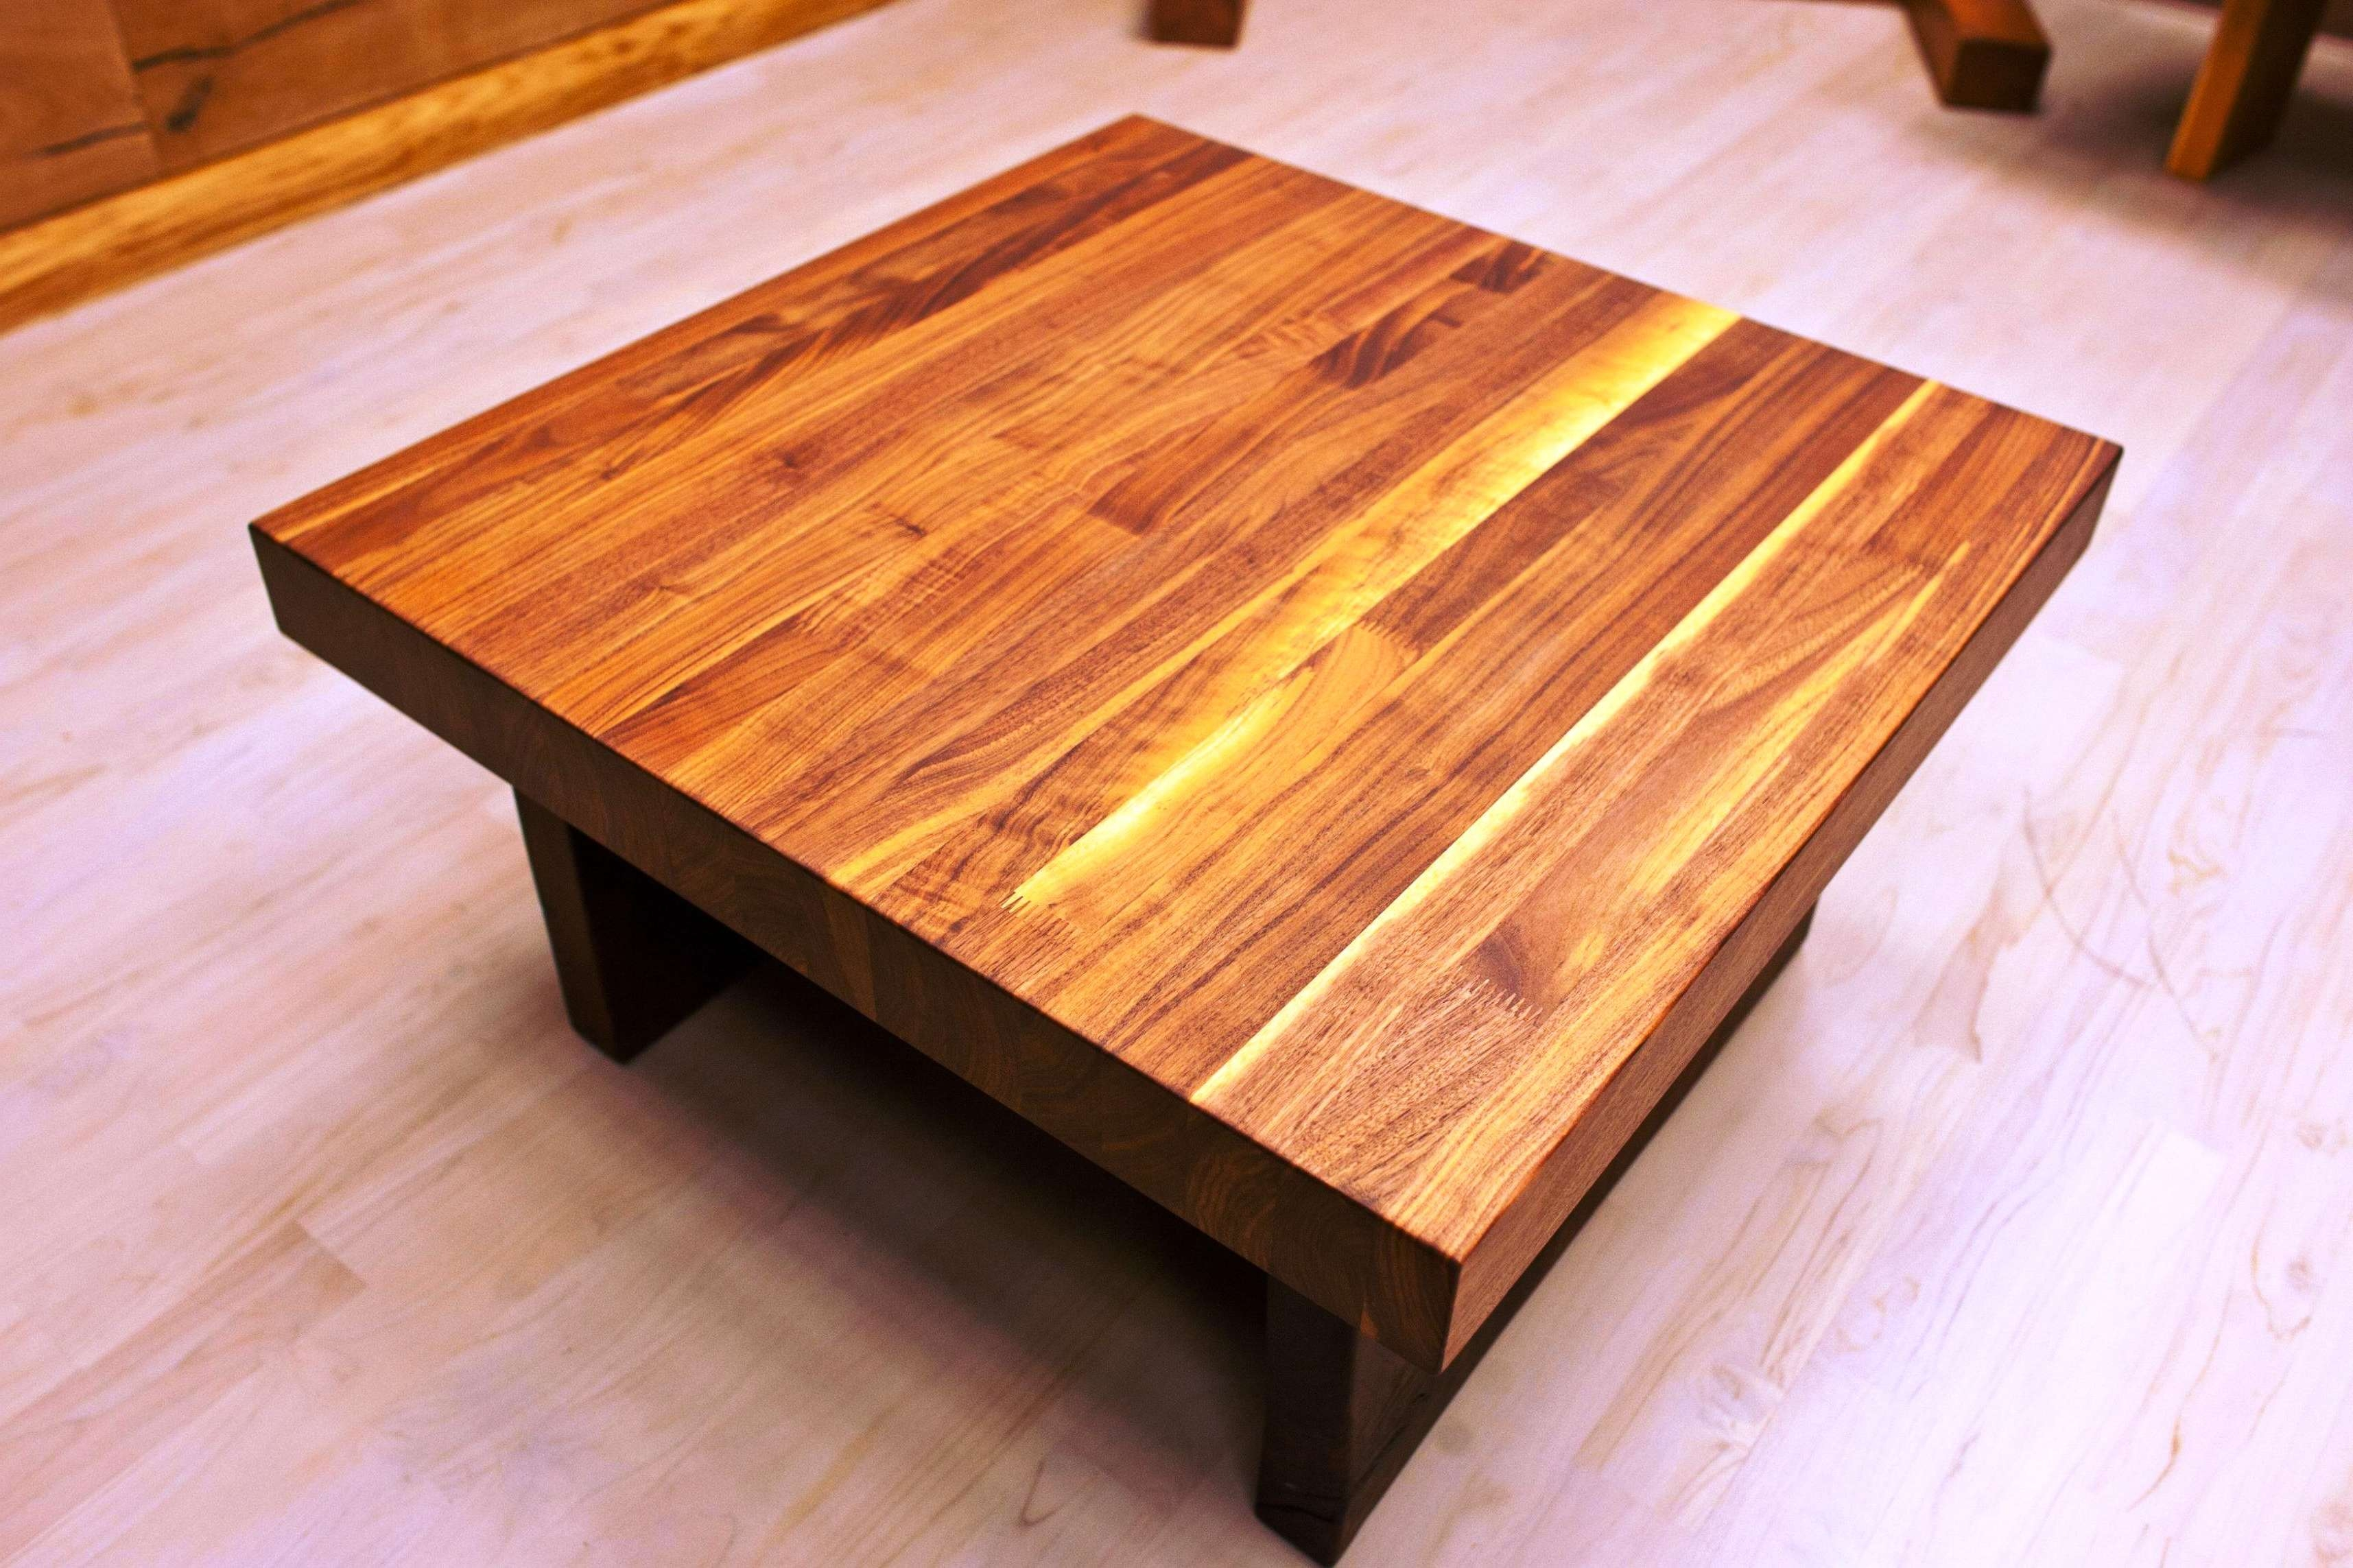 Coffee Table : Amazing Real Wood Coffee Table Cherry Coffee Table Within Popular Solid Wood Coffee Tables (View 6 of 20)